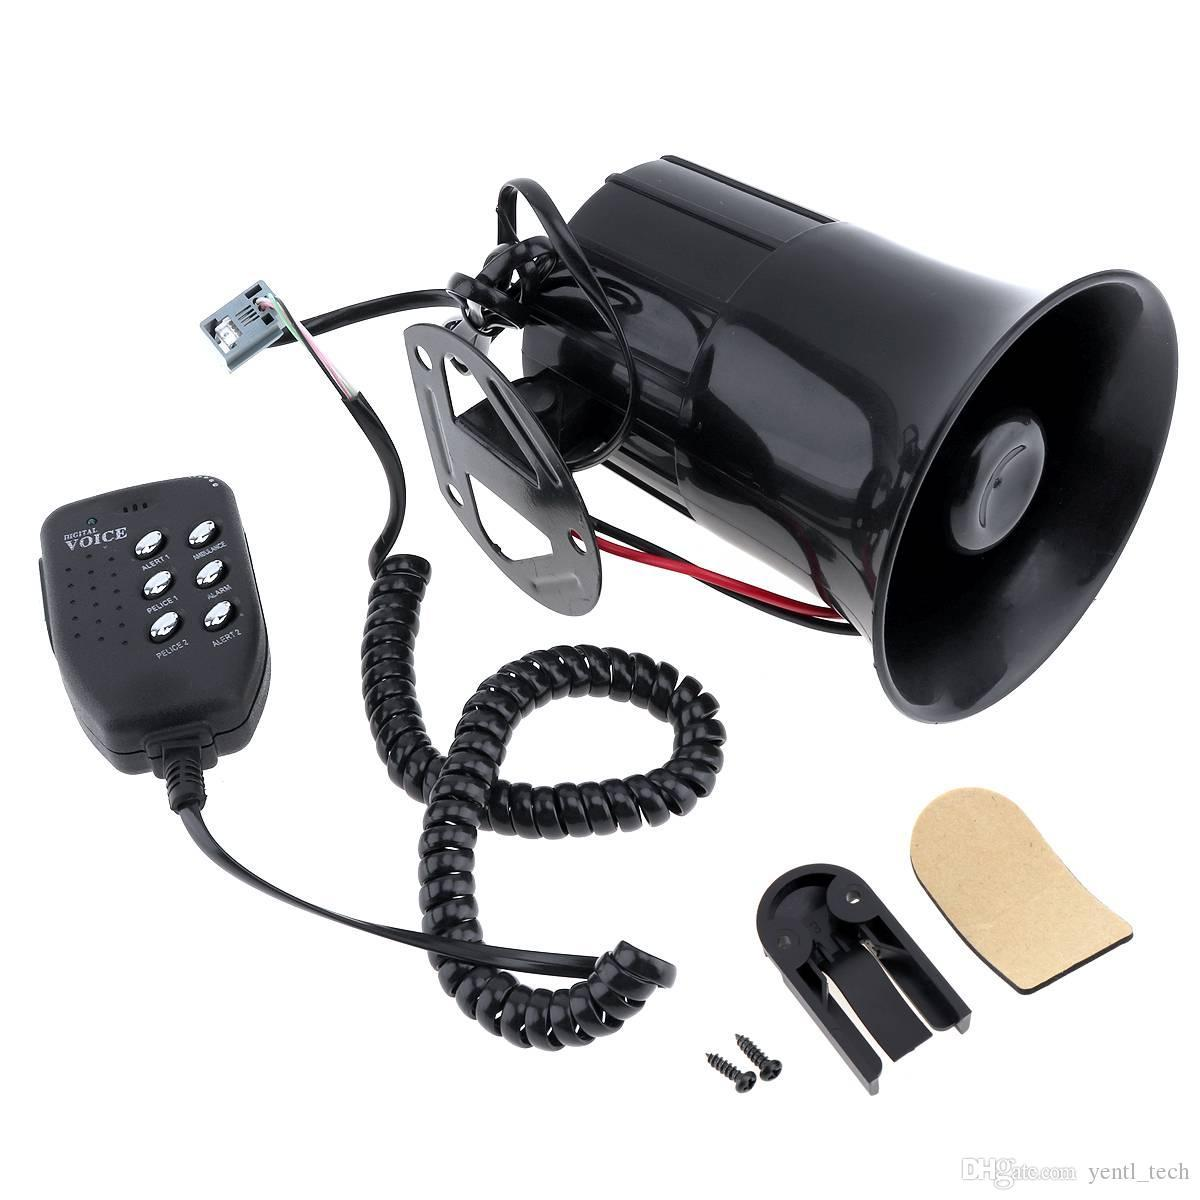 12V 100W Car Truck Electric Alarm Air Horn Siren Speaker 5 Sound Tone Super Loud with Mic Pack of 1